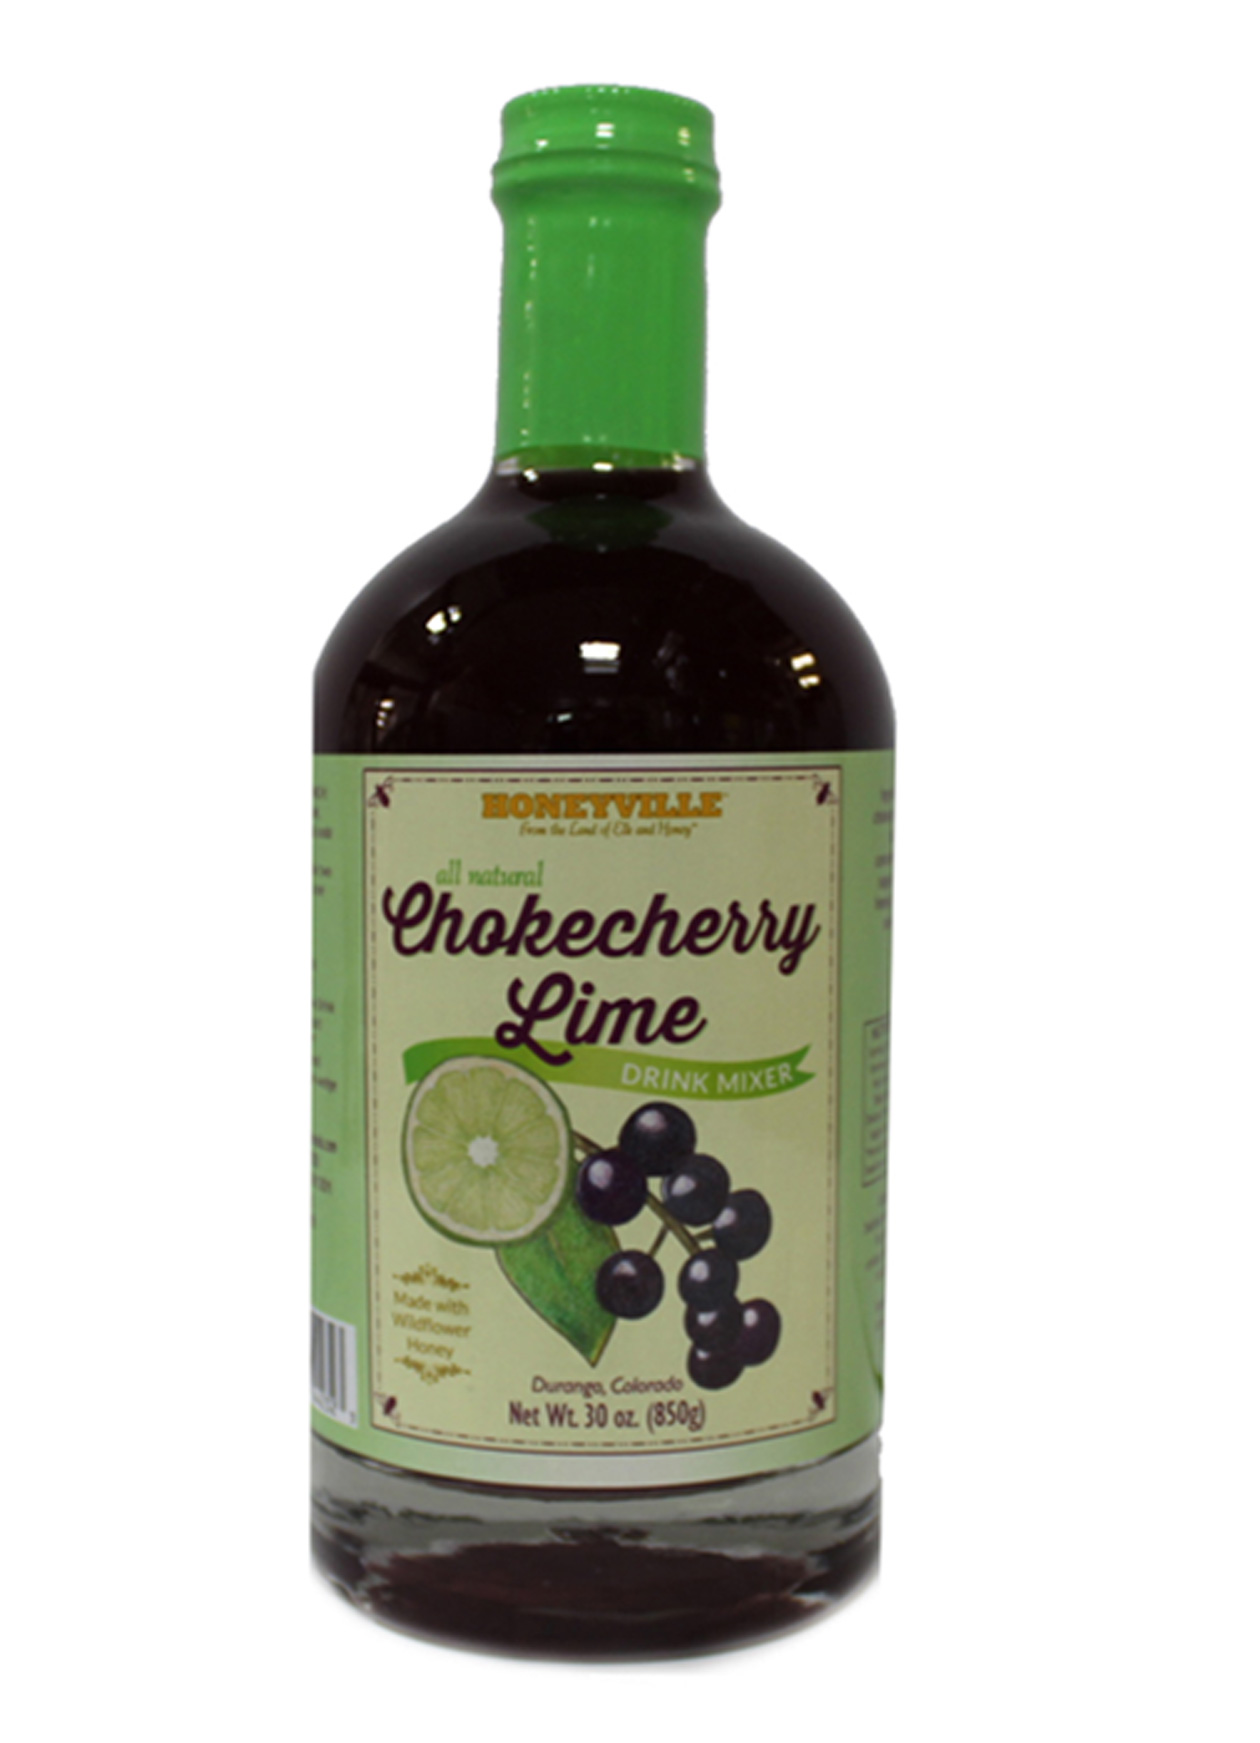 CHOKECHERRY LIME DRINK MIXER 30 oz LG